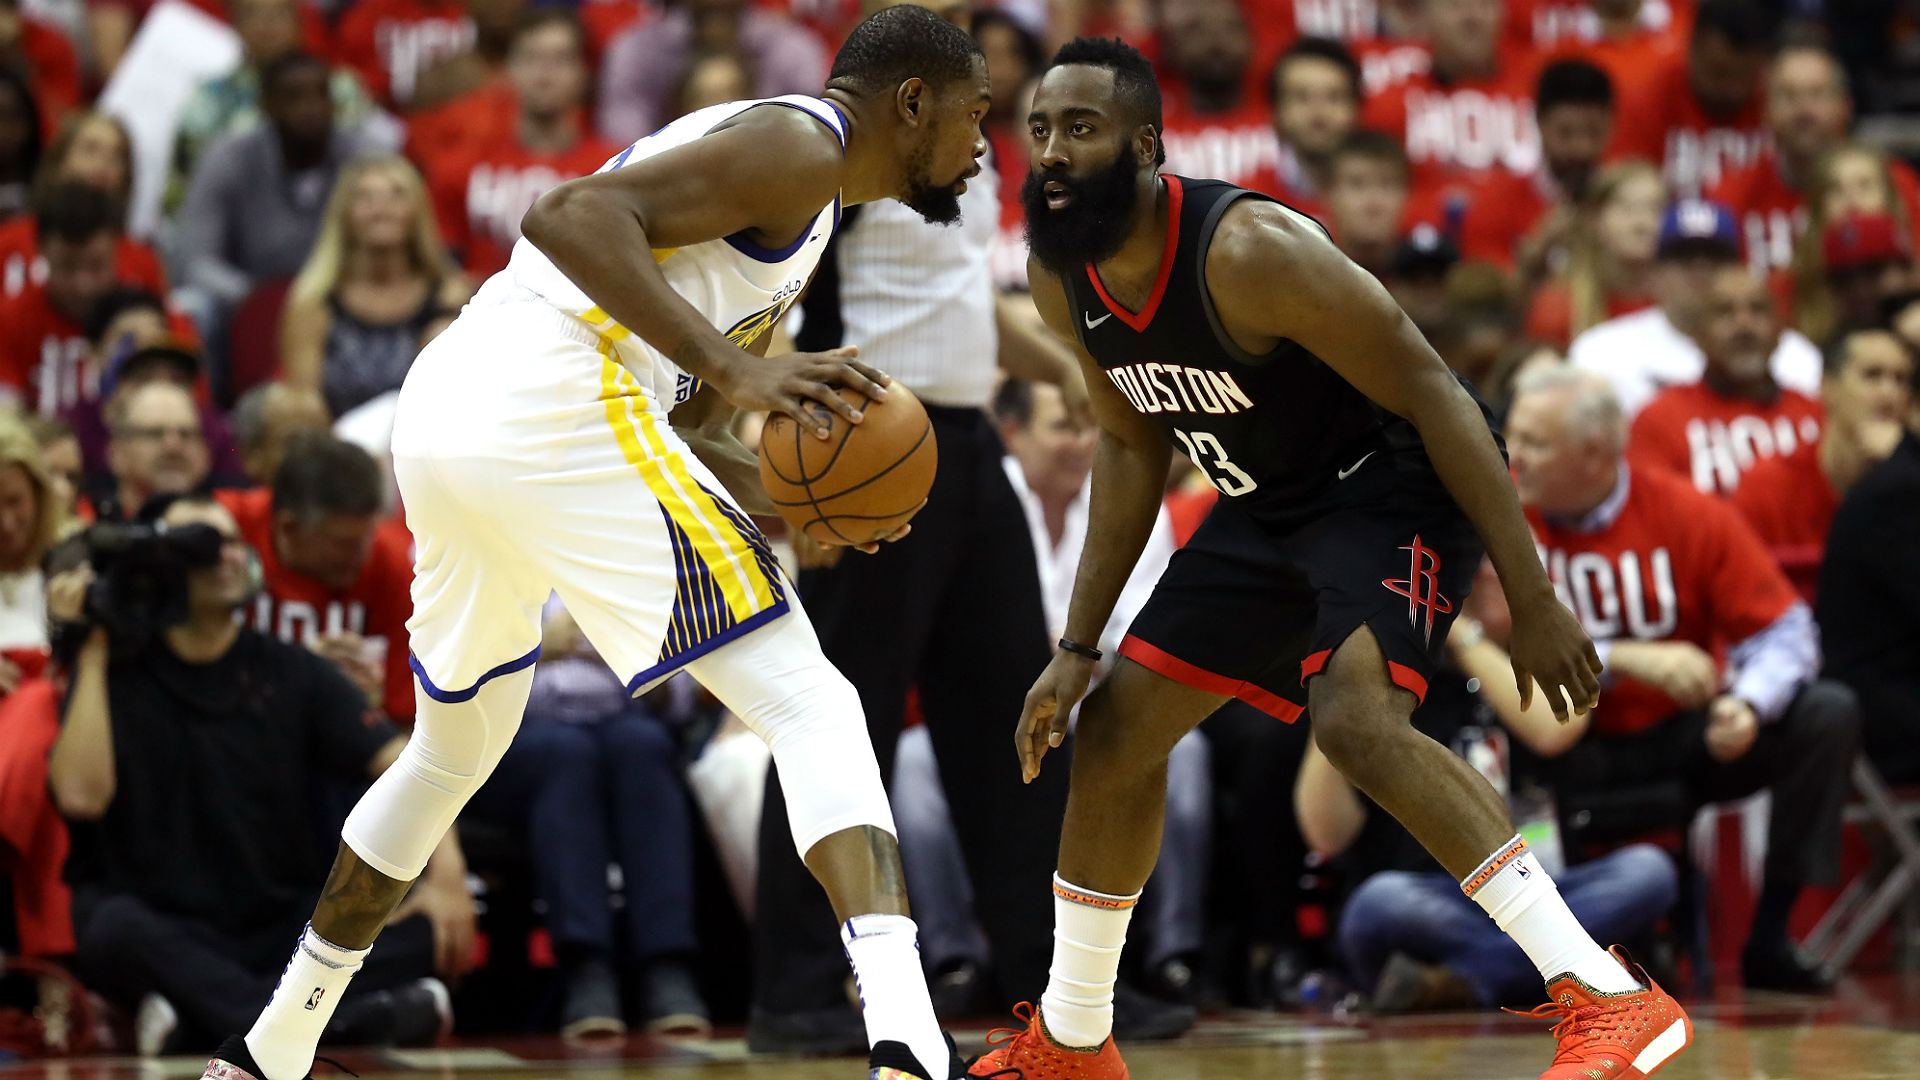 Warriors race past Rockets in NBA West finals opener